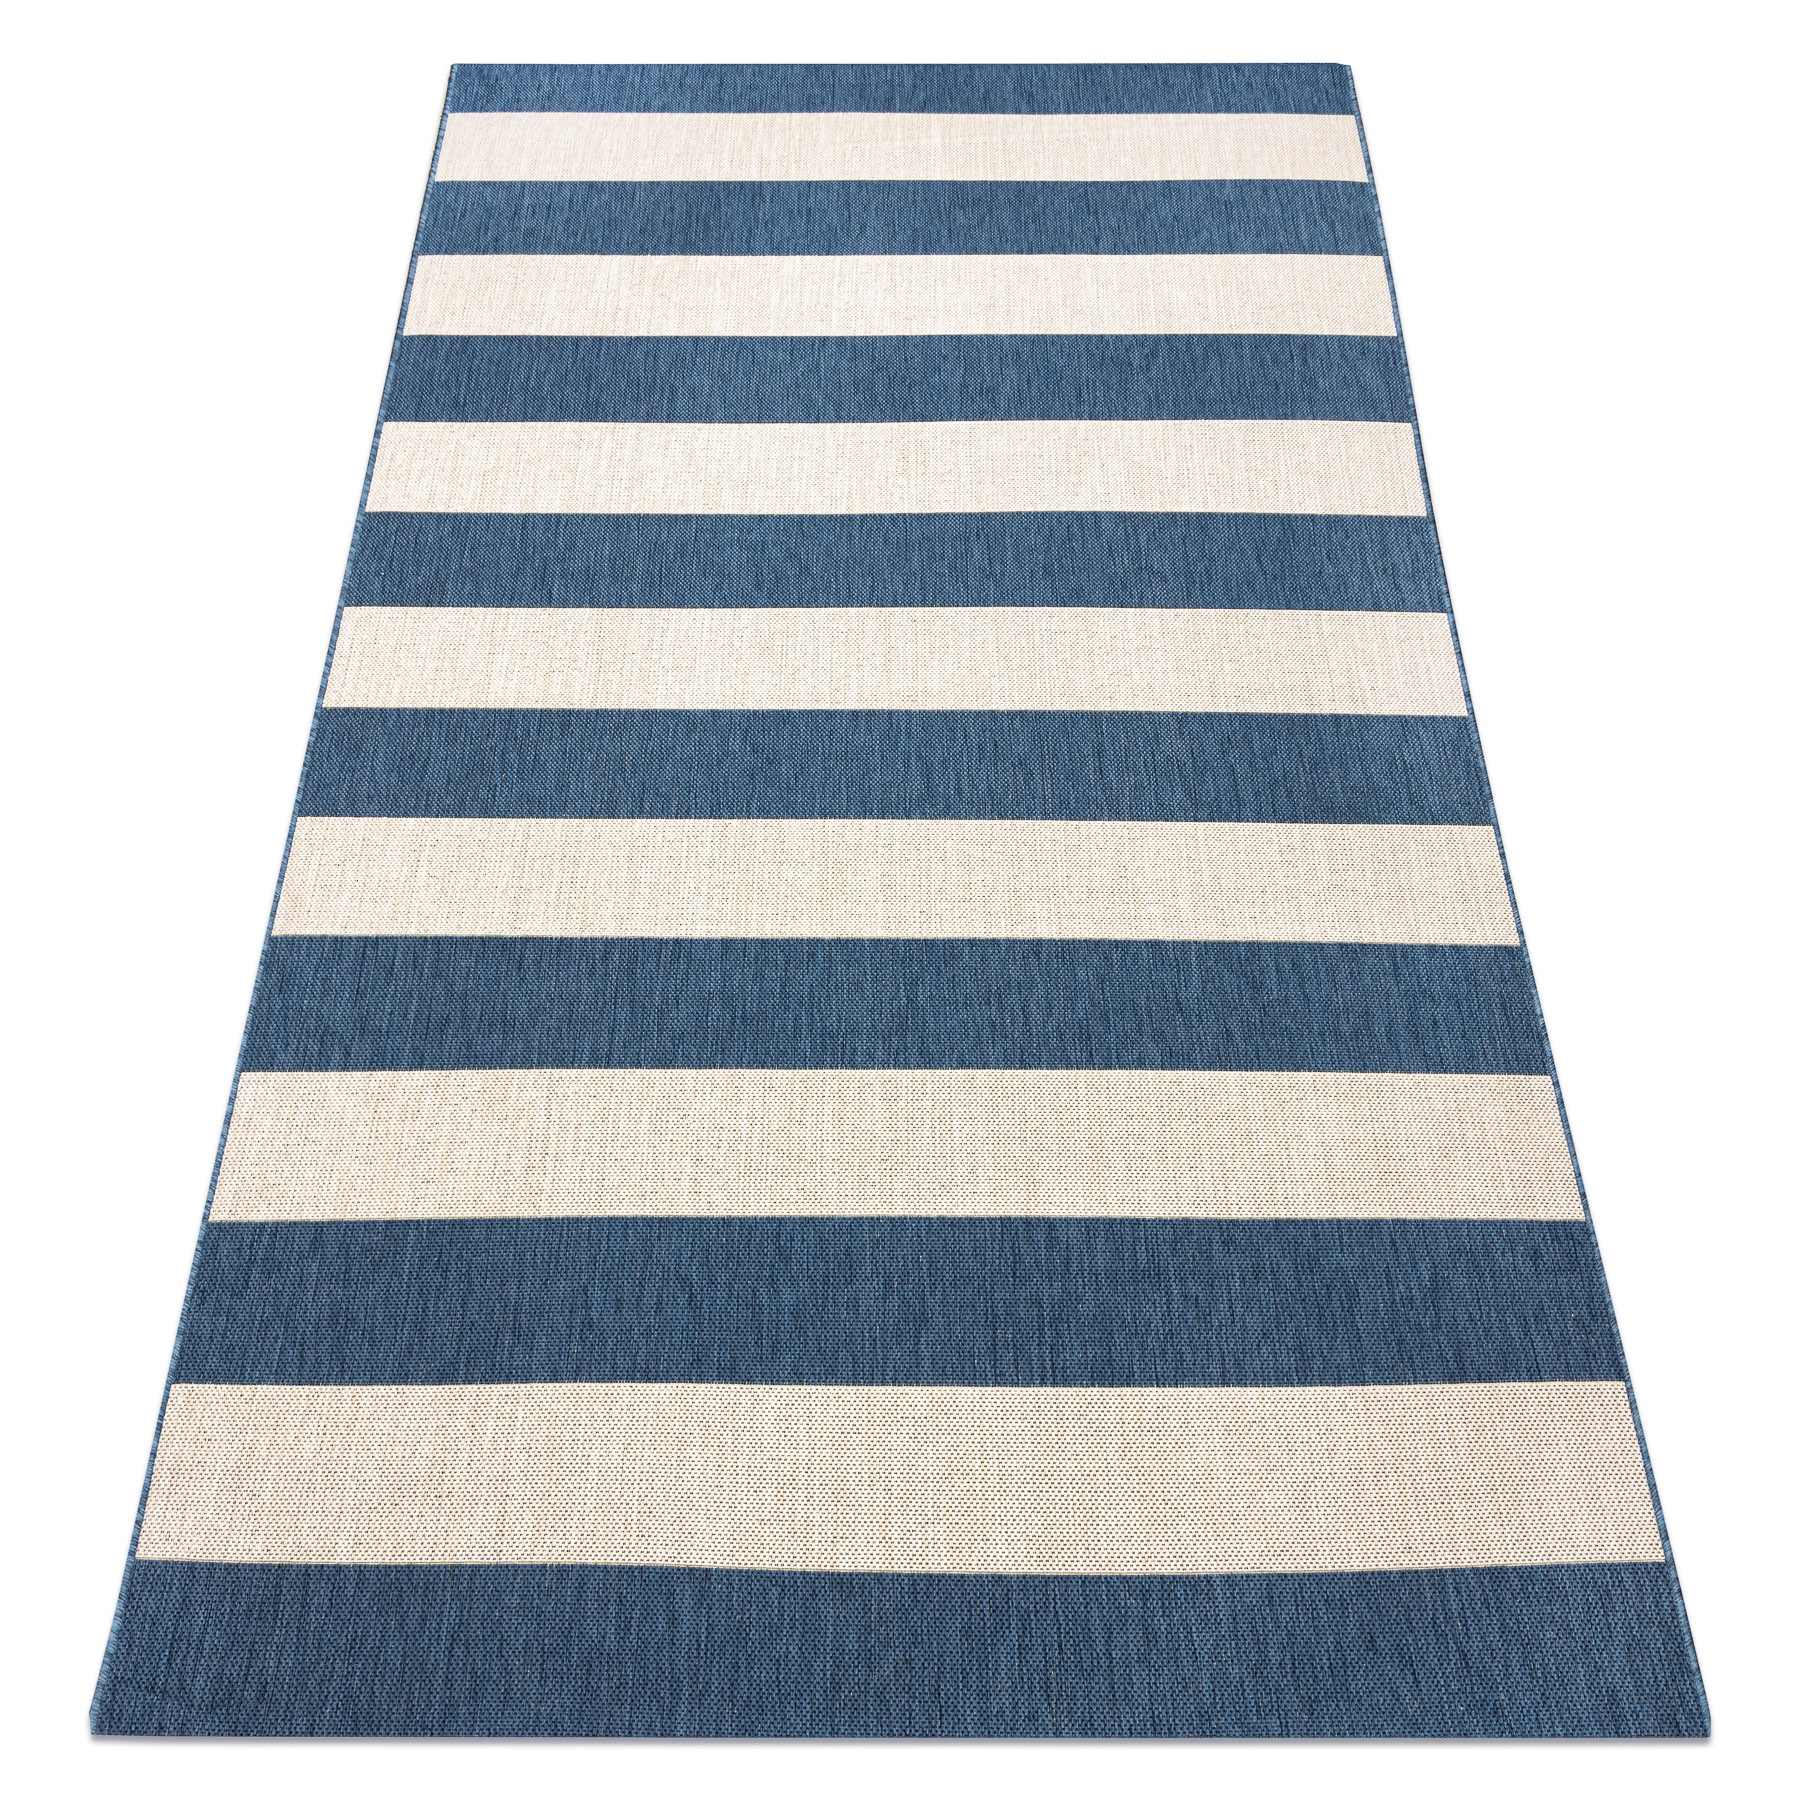 Modern Sisal Rug Grey Lines Flat Stripes Blue Beige Flat Weave Easy Clean Ebay